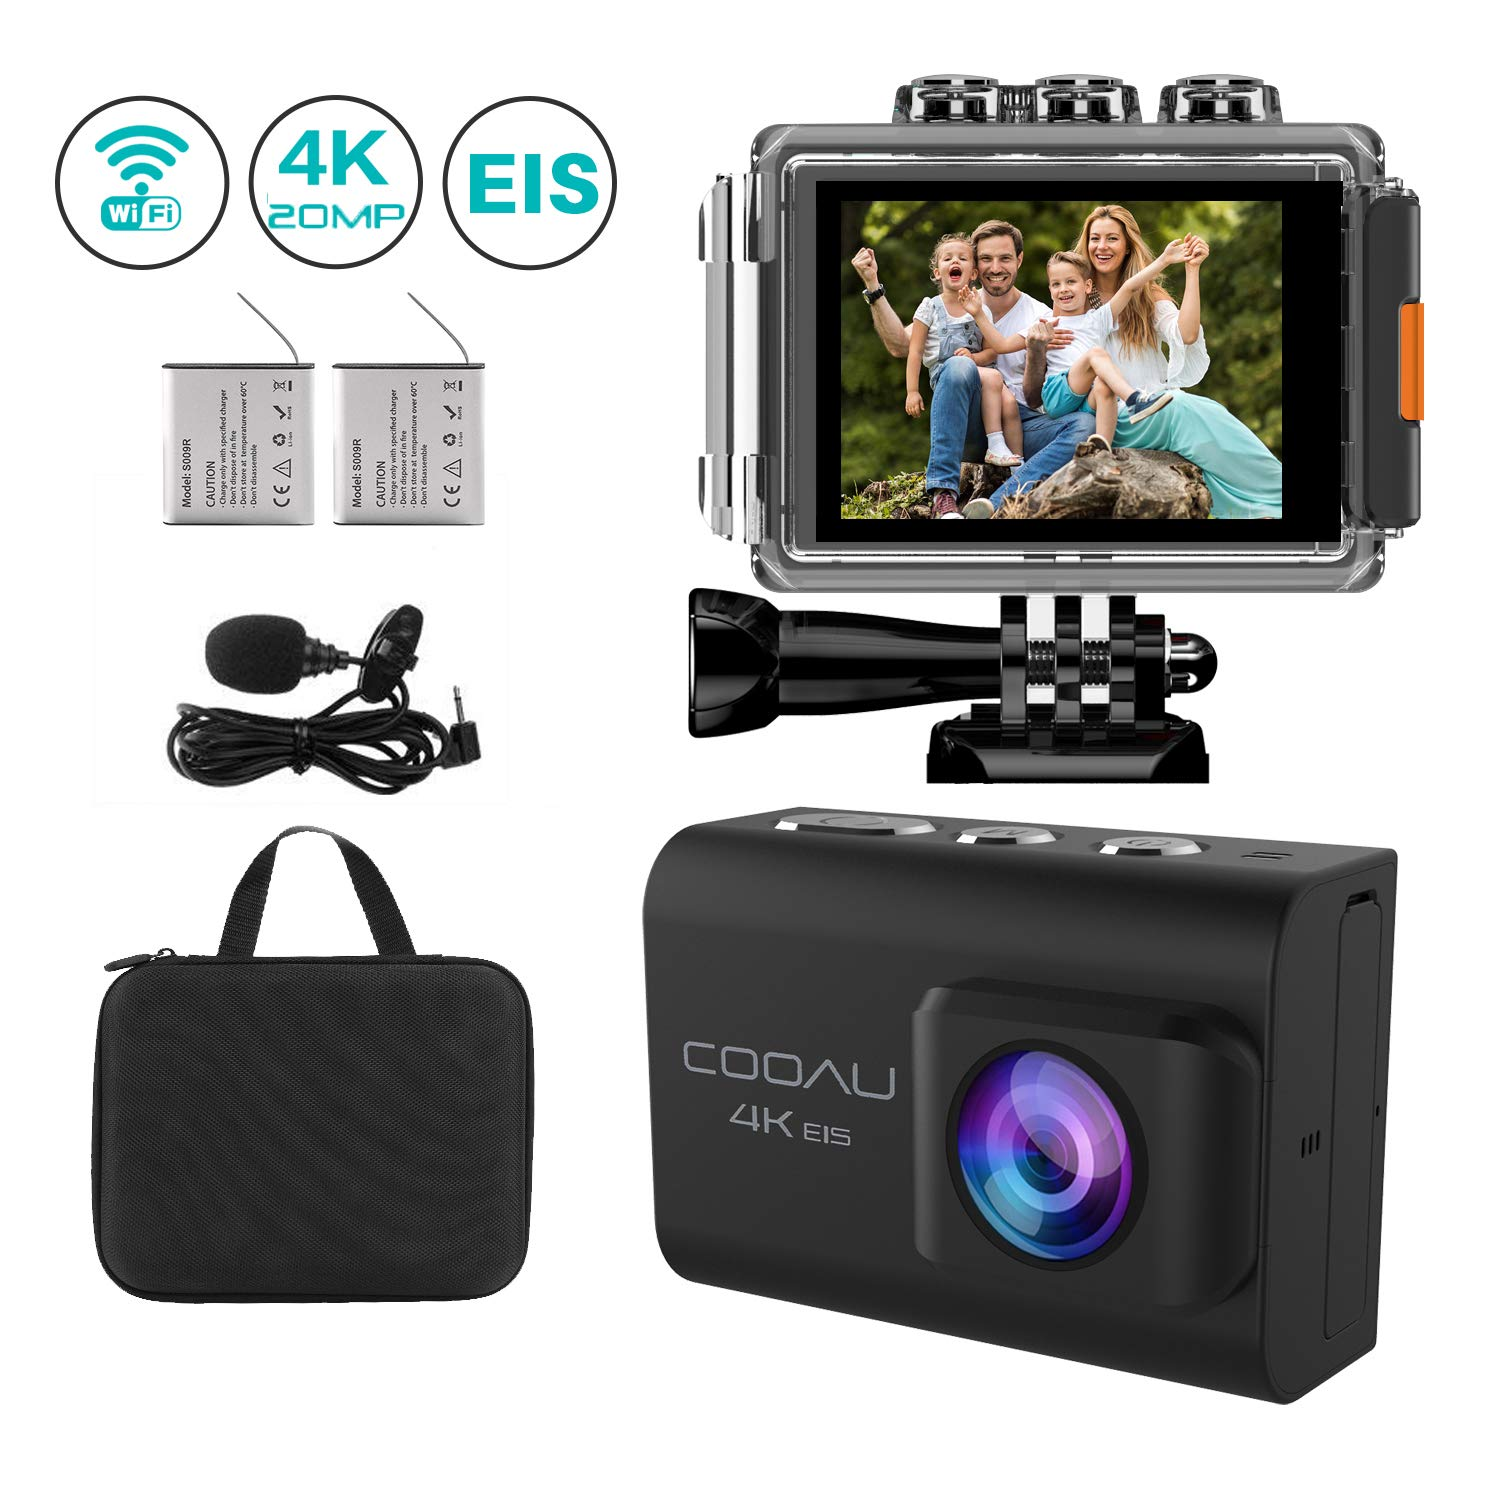 COOAU 4K 20MP WiFi Action Camera Ultra HD Sports Camera 170°Wide-Angle Lens 98ft Underwater Camcorder, EIS Sony Sensor, External Mic, Travel Bag Includes mounting Accessories and 2 Upgraded Batteries